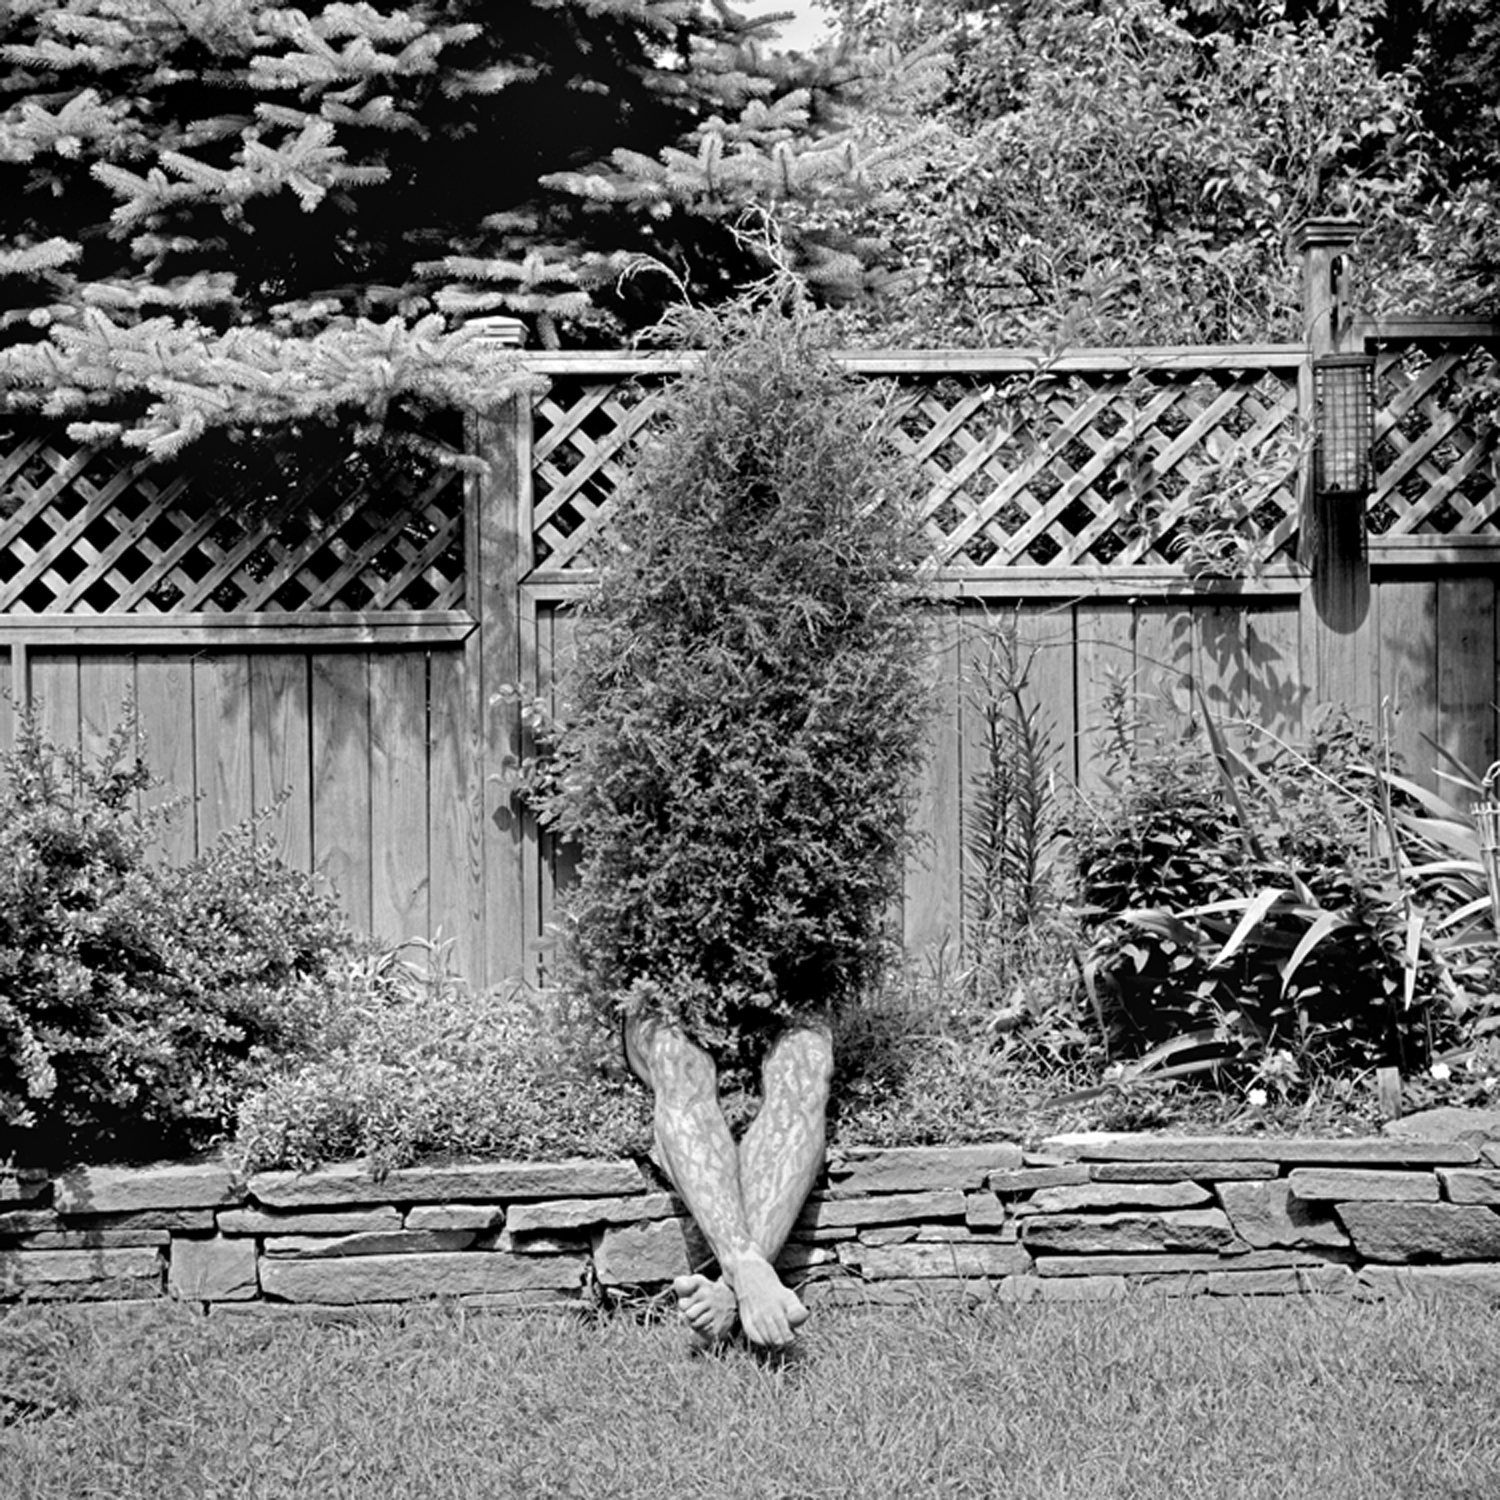 Resting, 2005, archival pigment print on paper